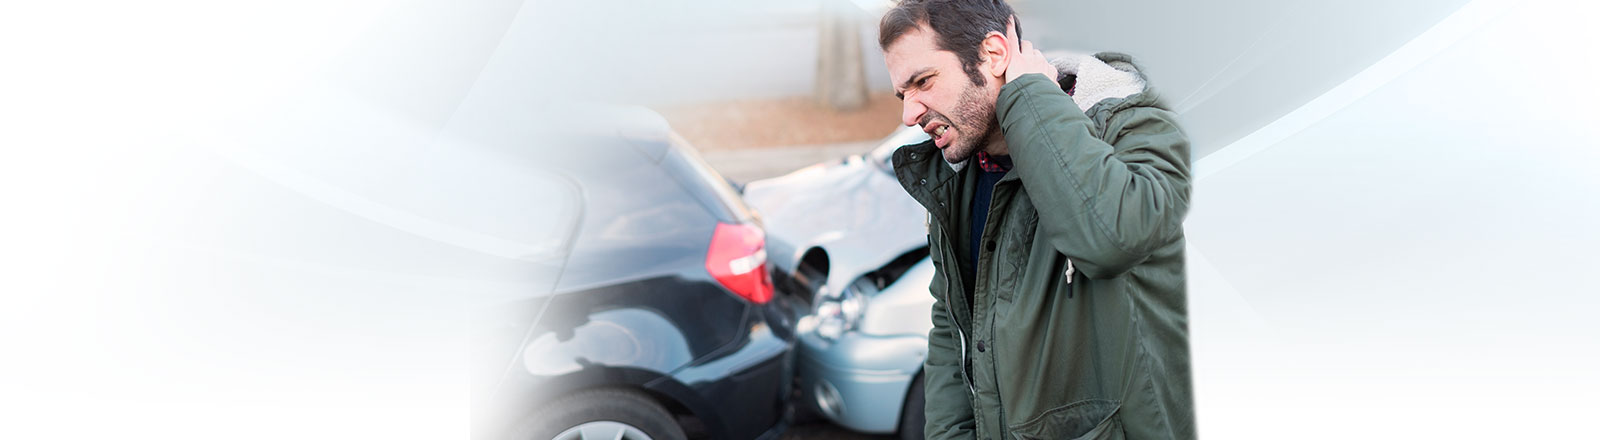 Auto Accident Injury Chiropractors - Absolute Health Clinic